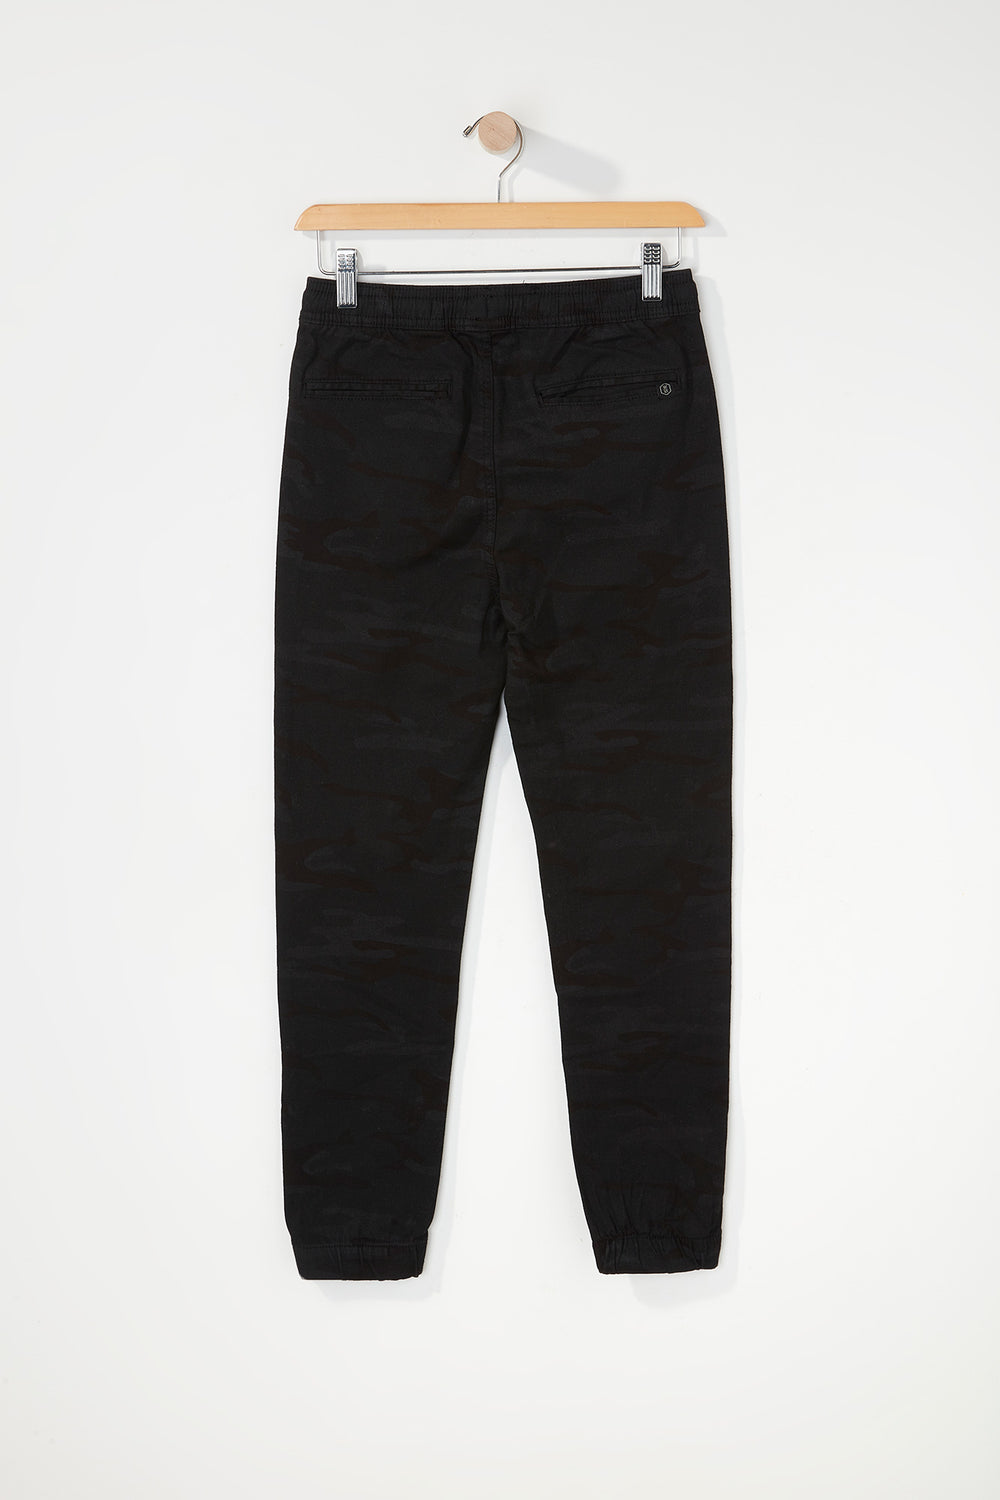 West49 Boys Camo Jogger Black with White